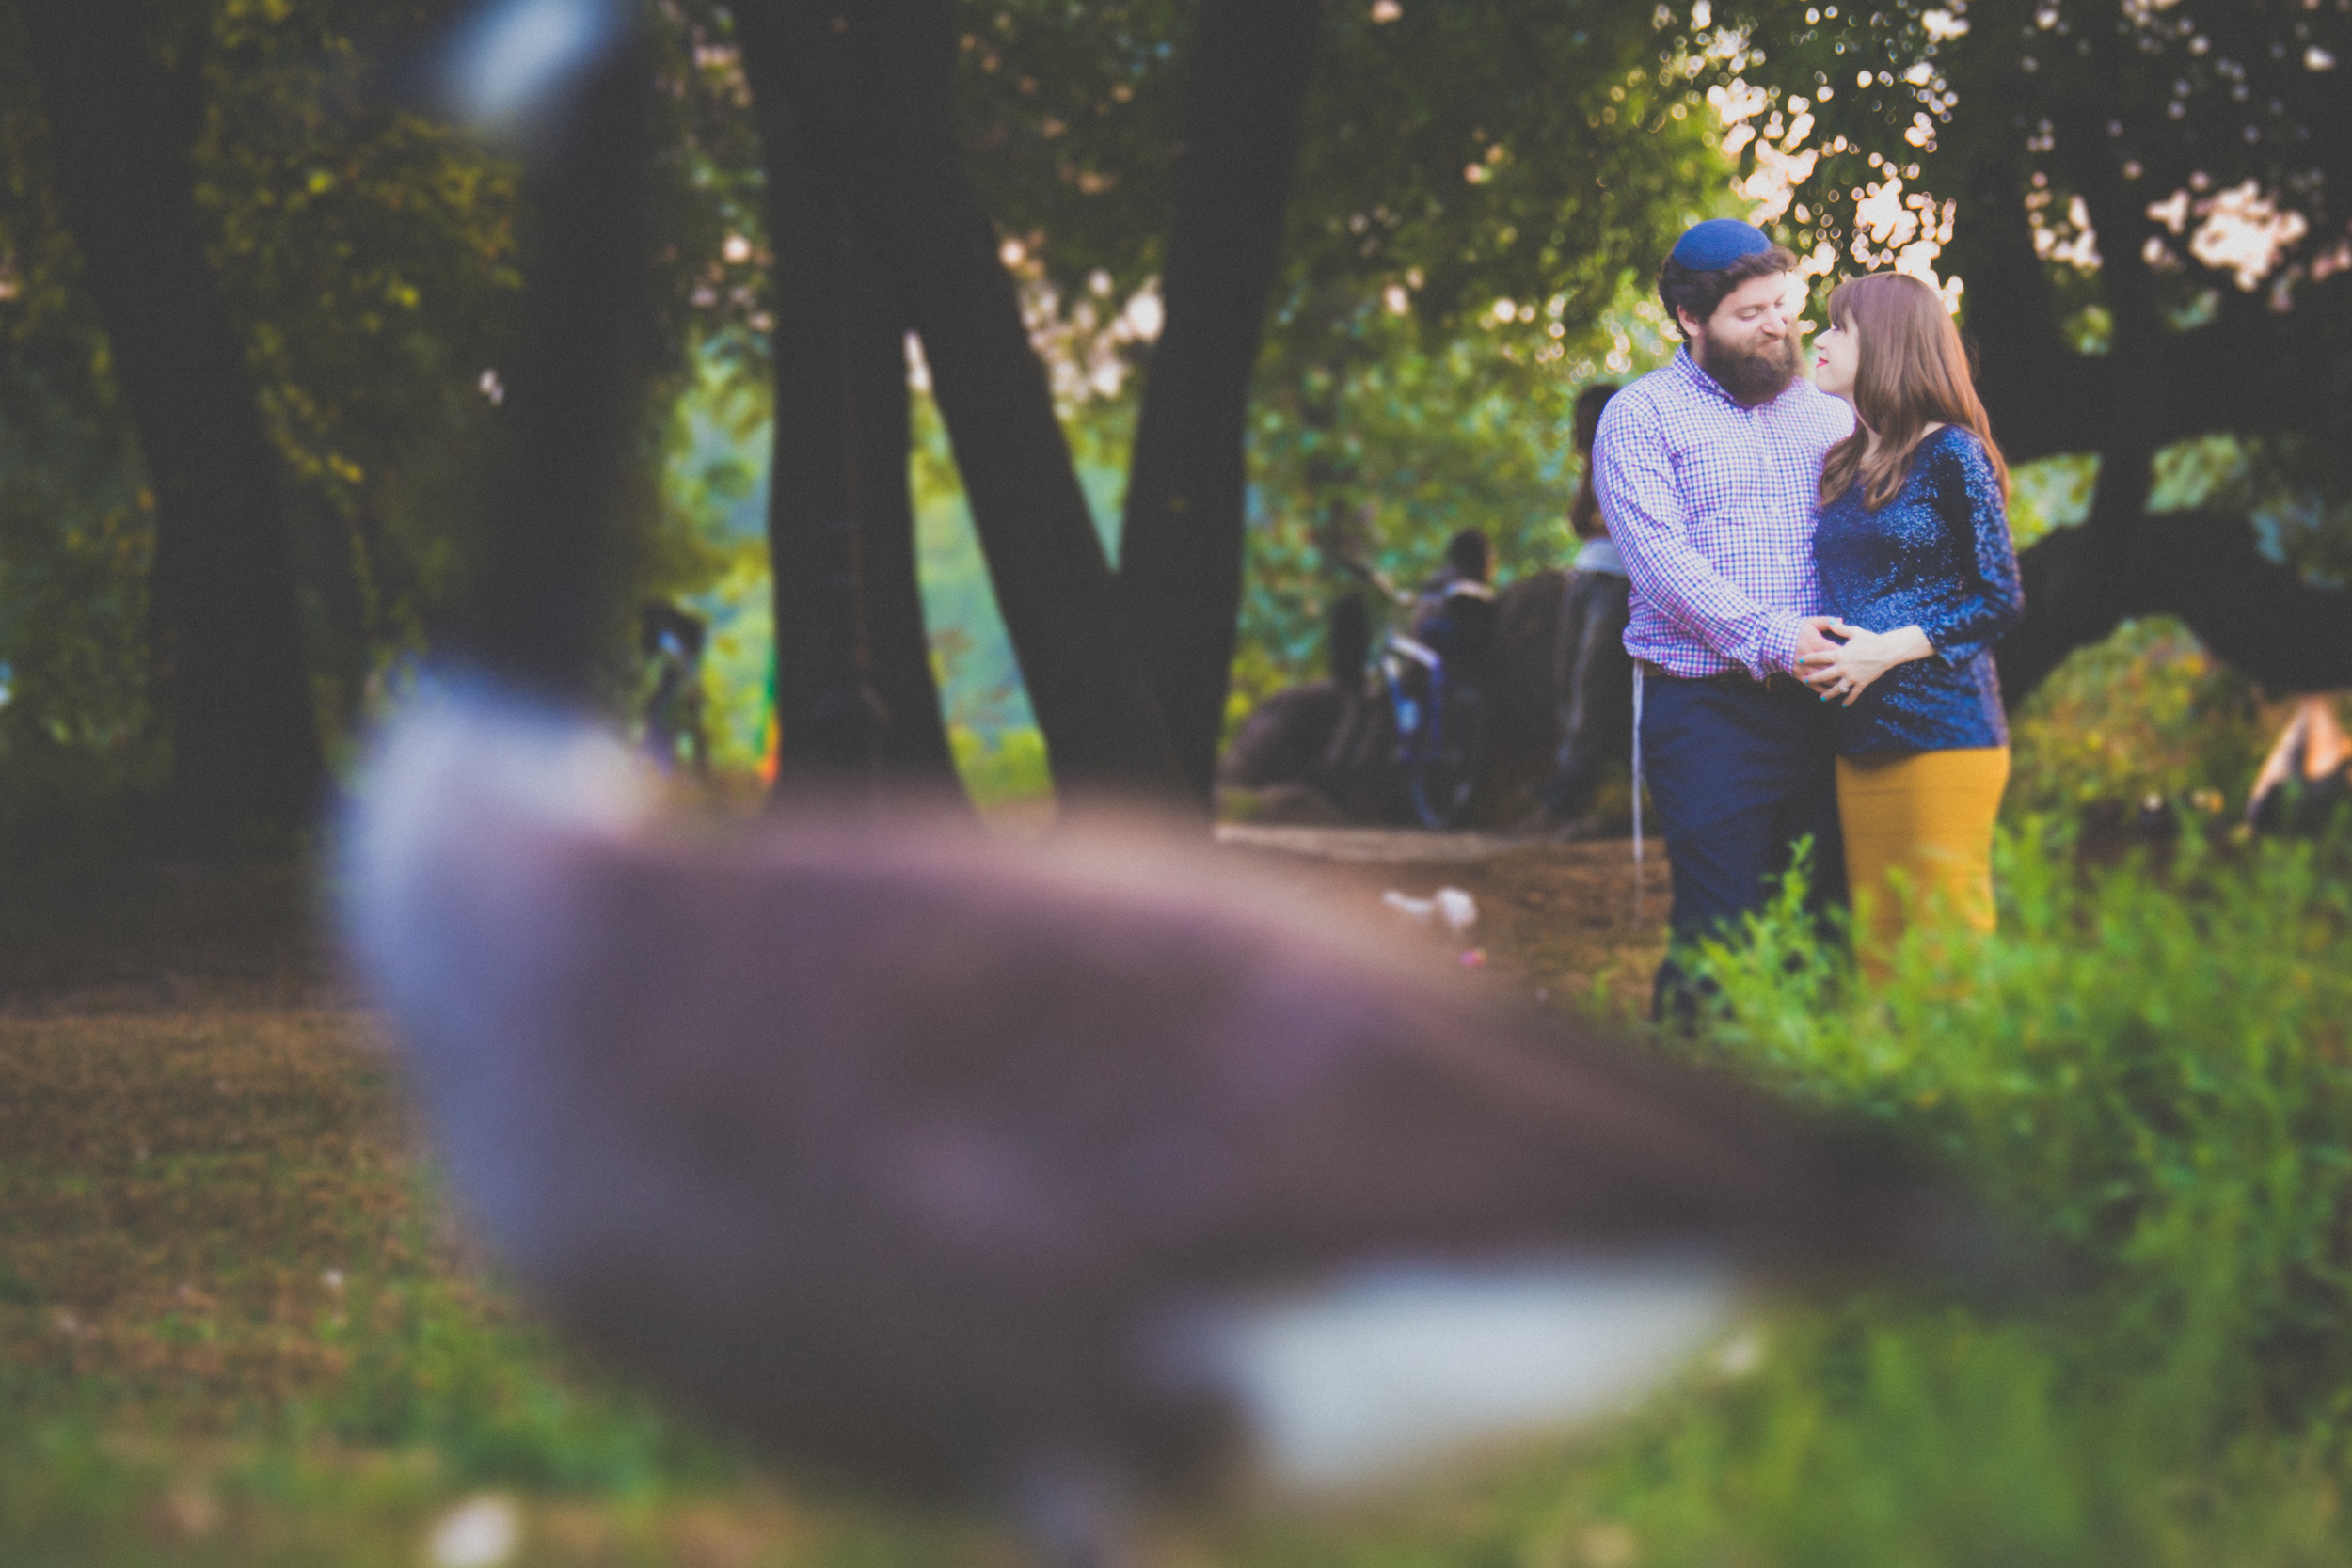 Photoshoot Yossef & Chaya | Maternity | Piha studio photography, new york, events, -2.jpg